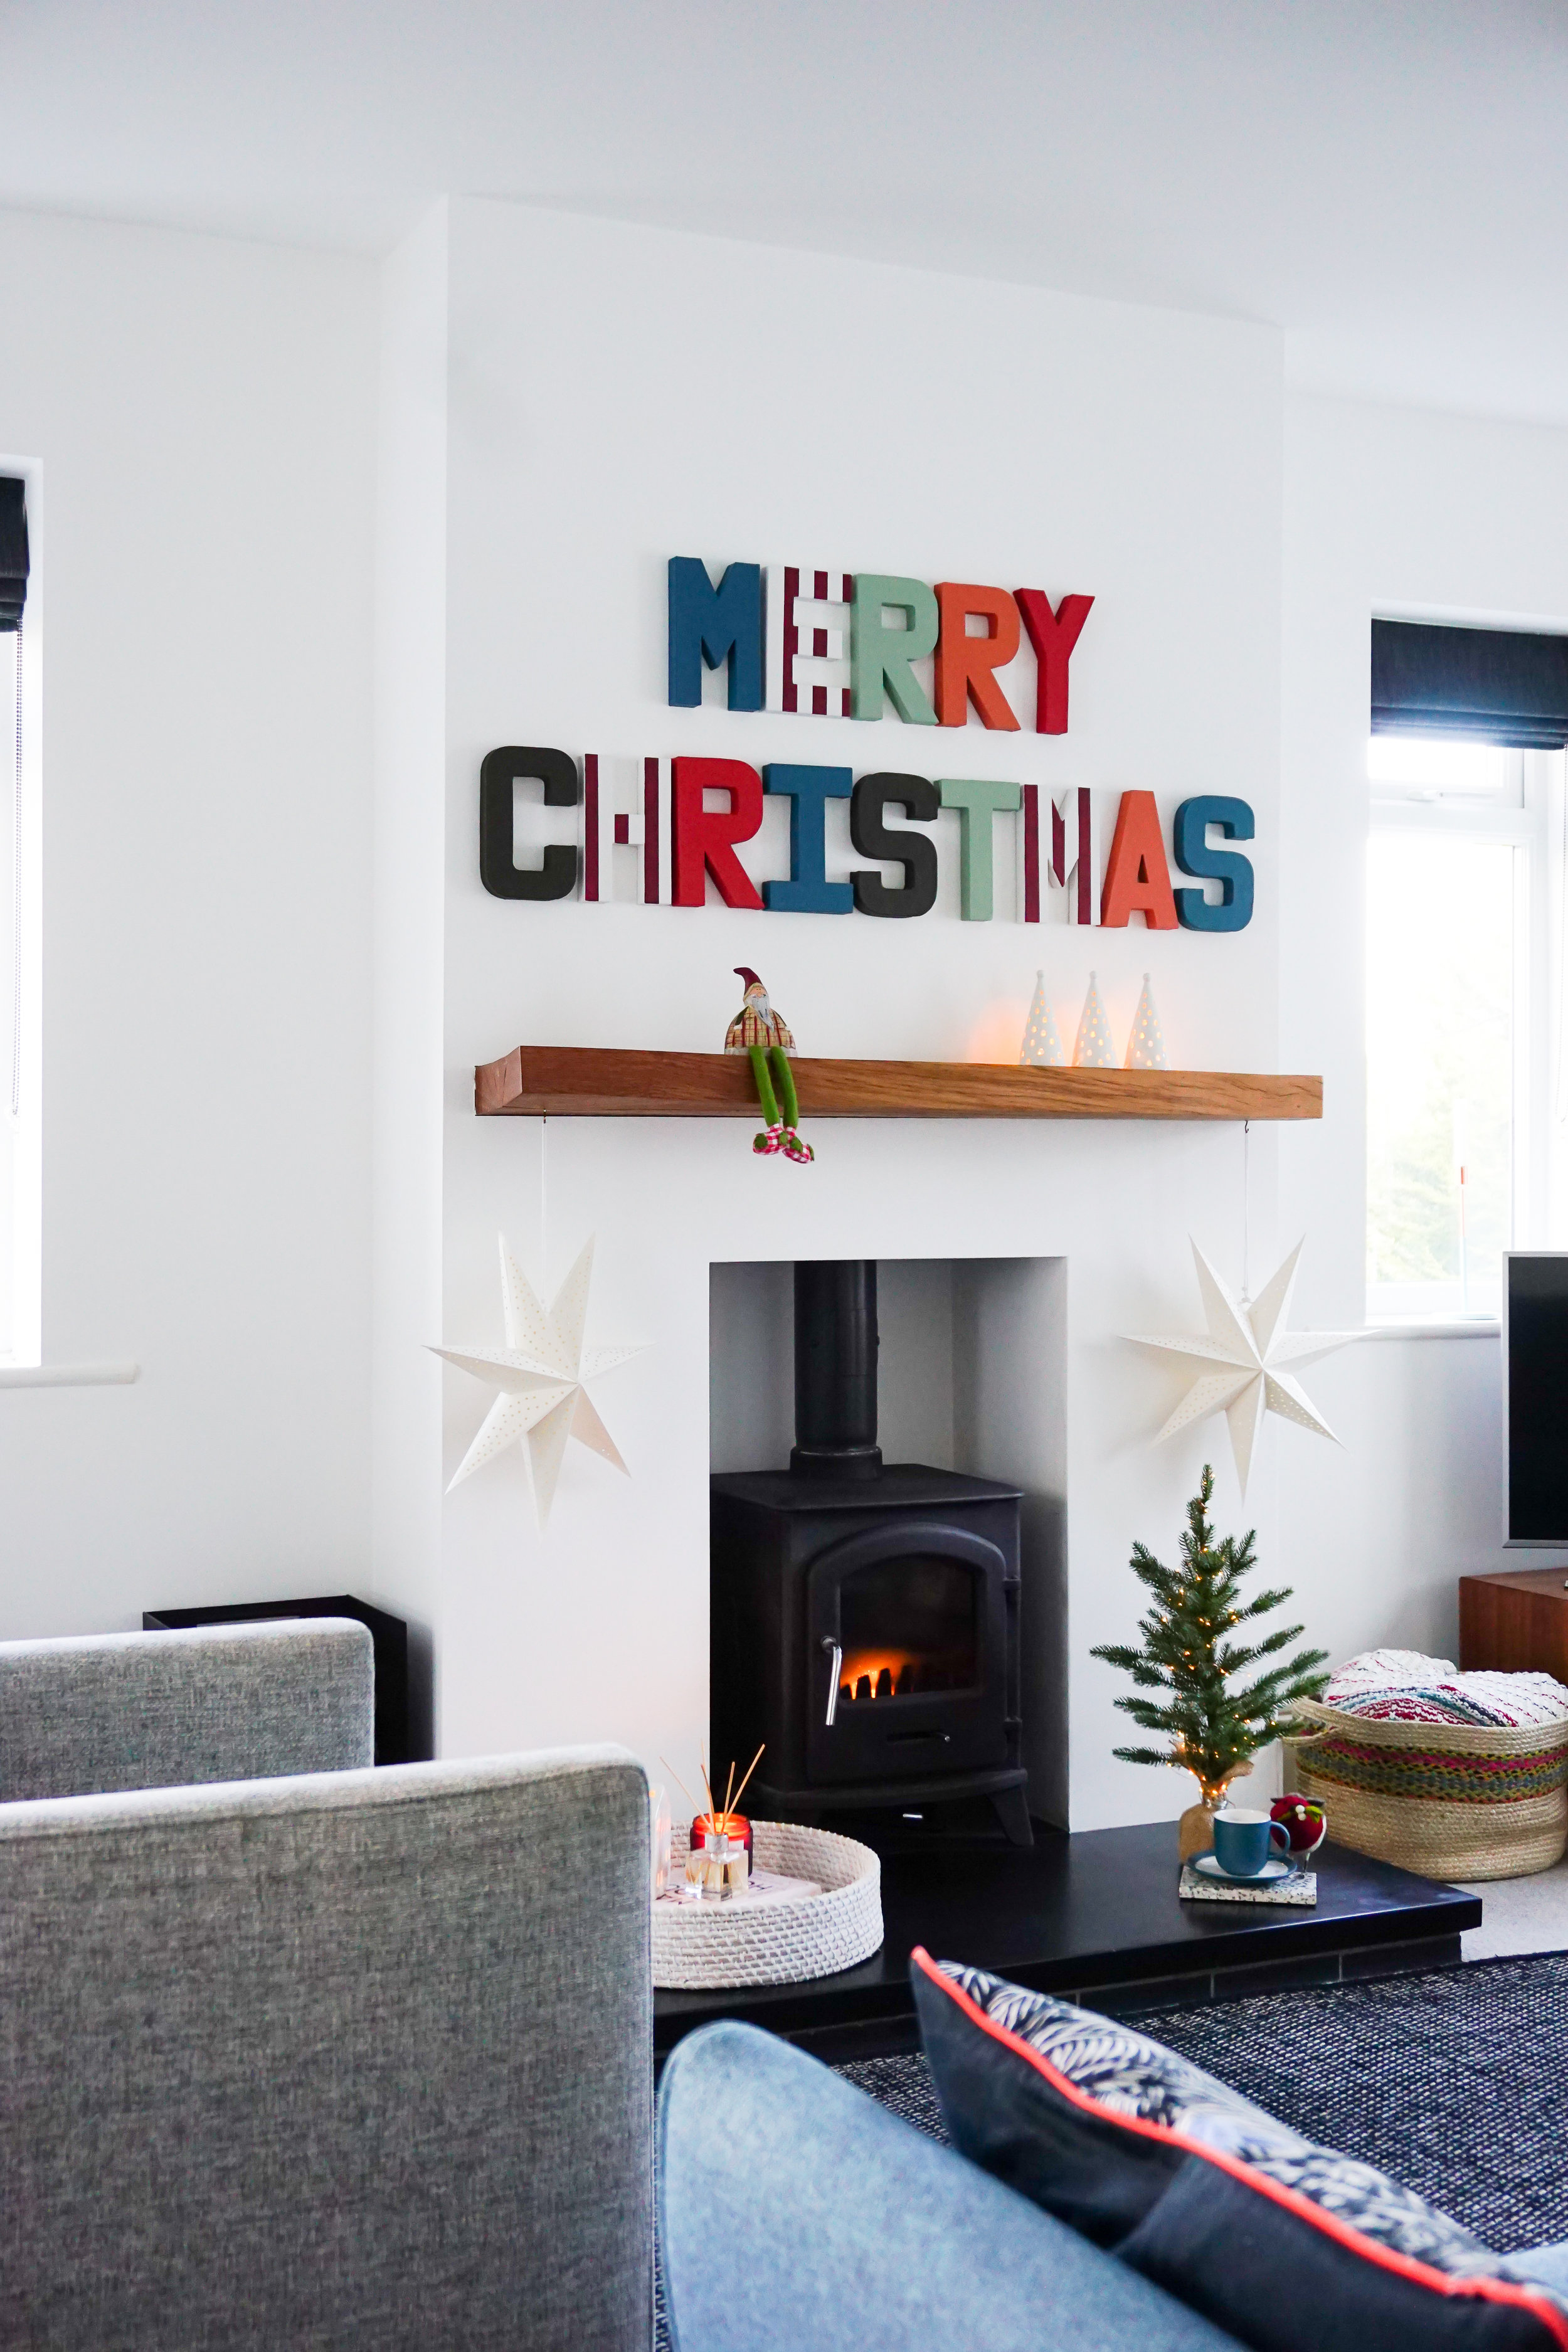 Merry Christmas craft using Dulux Colour of the Year 2019 Love palette